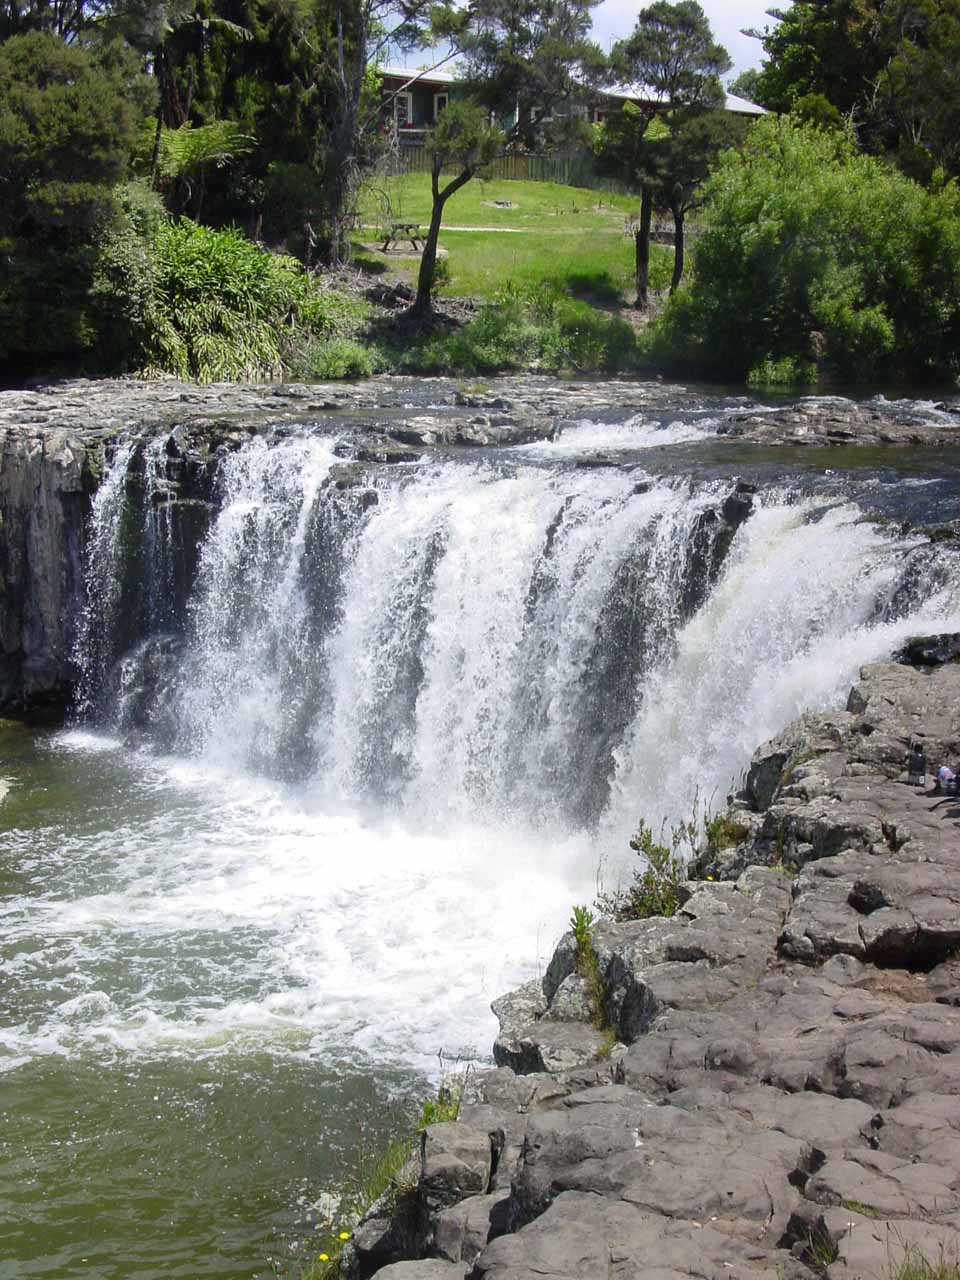 A closer look at Haruru Falls